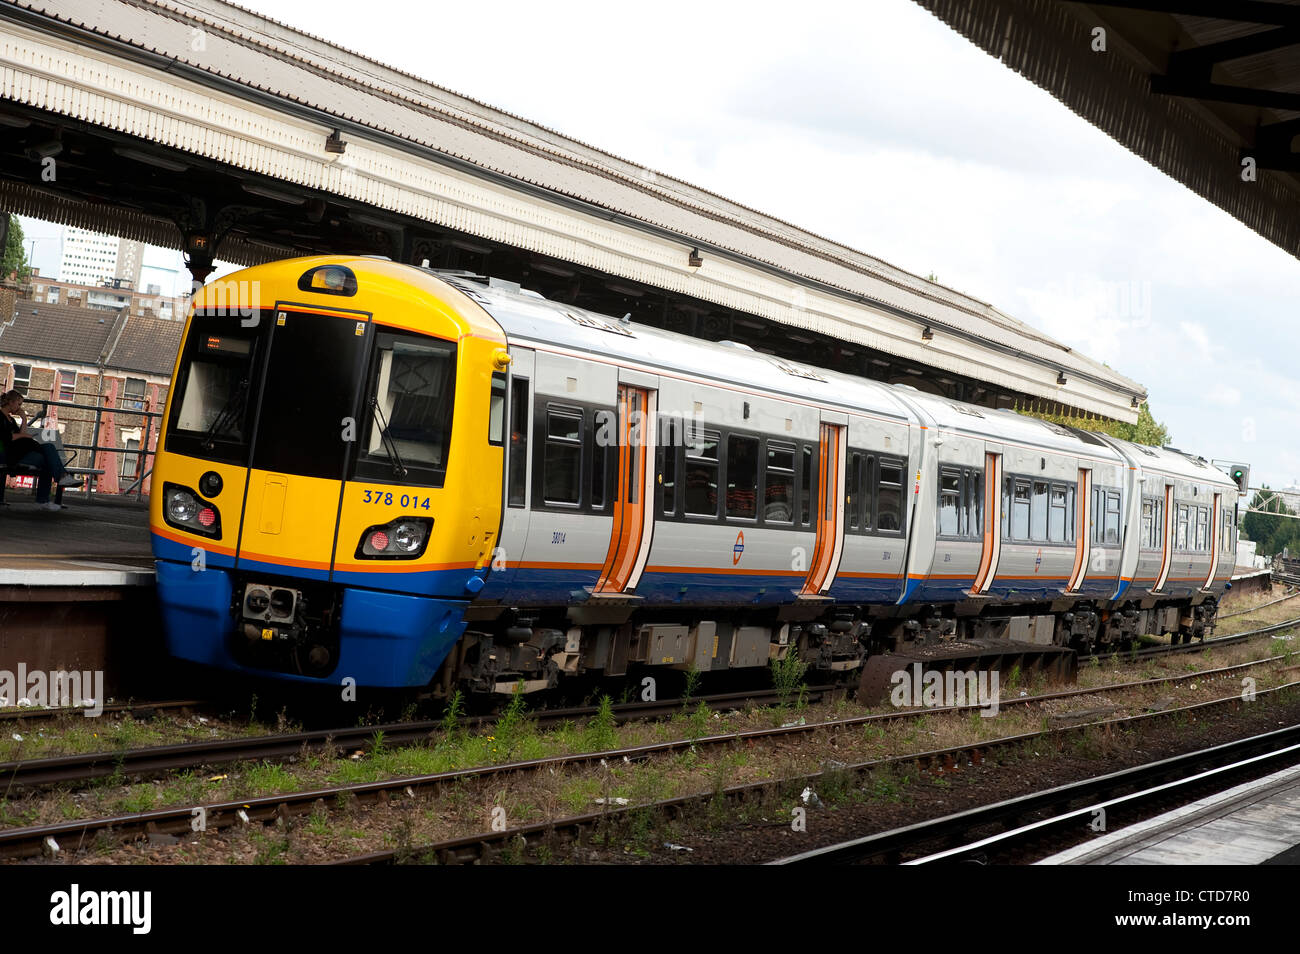 Class 378 passenger train in London Overground livery at Clapham Junction, England. - Stock Image